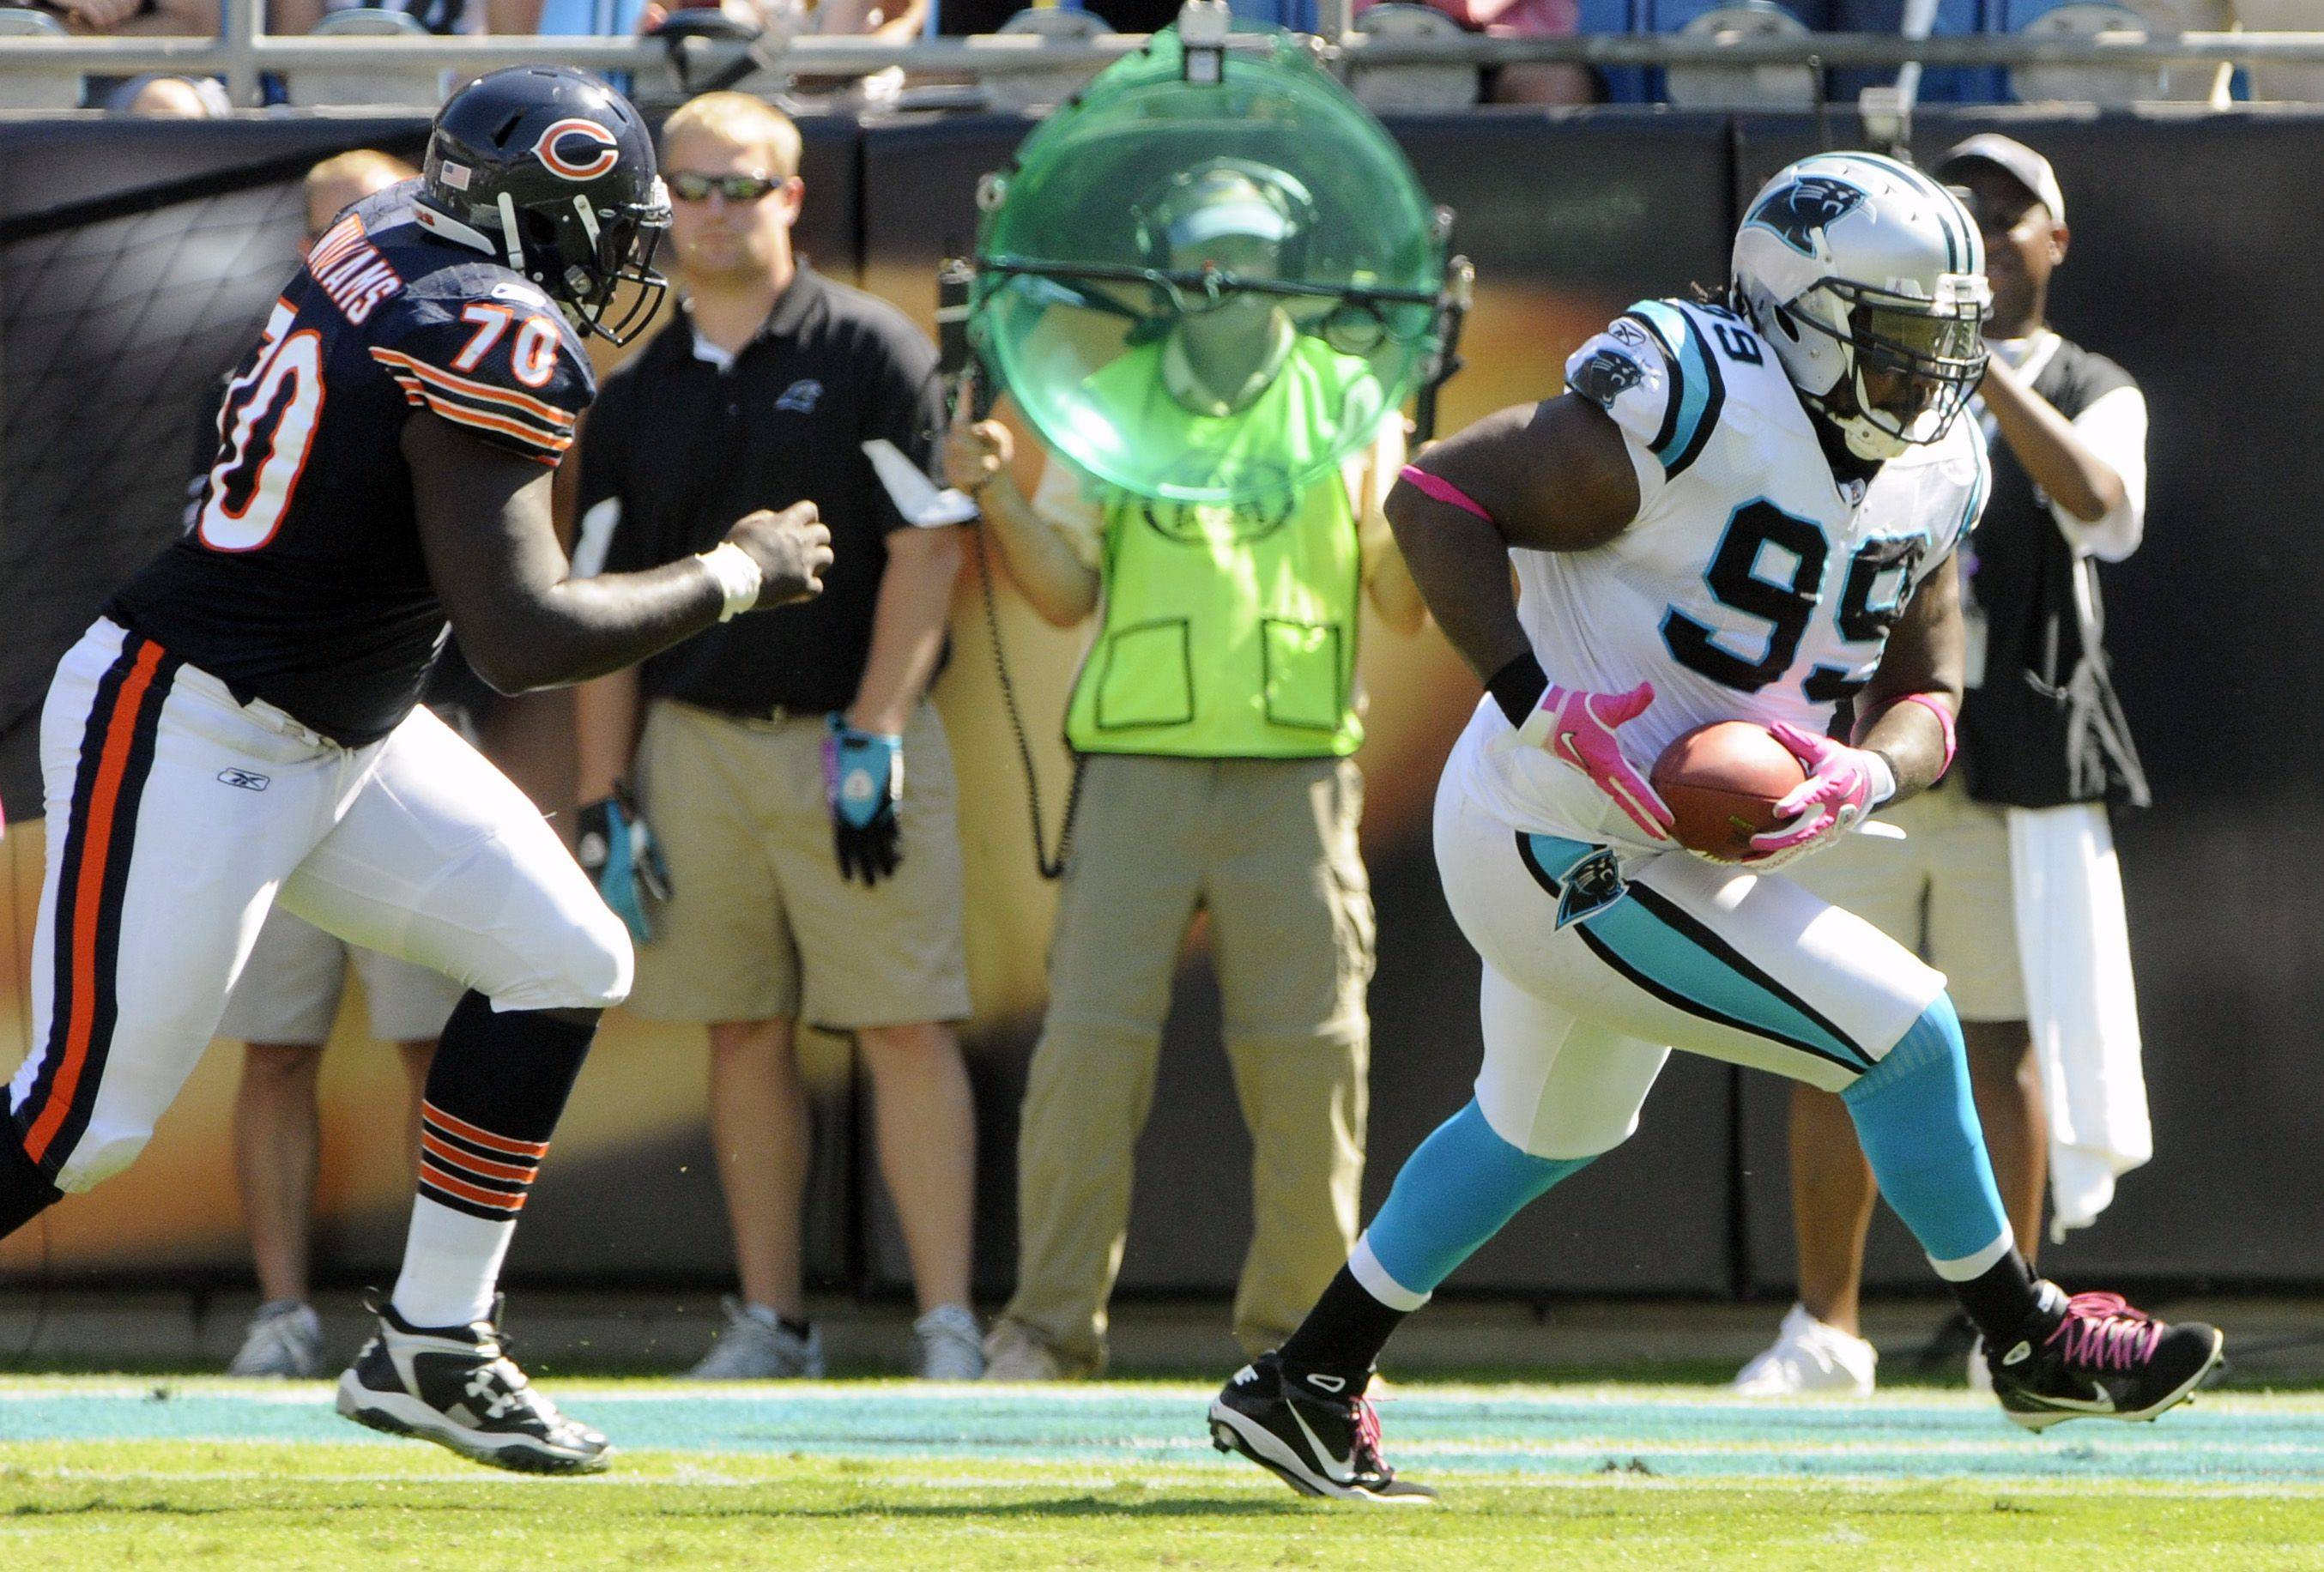 Carolina Panthers' Ed Johnson runs after intercepting a pass as Chicago Bears' Edwin Williams pursues in the first half.